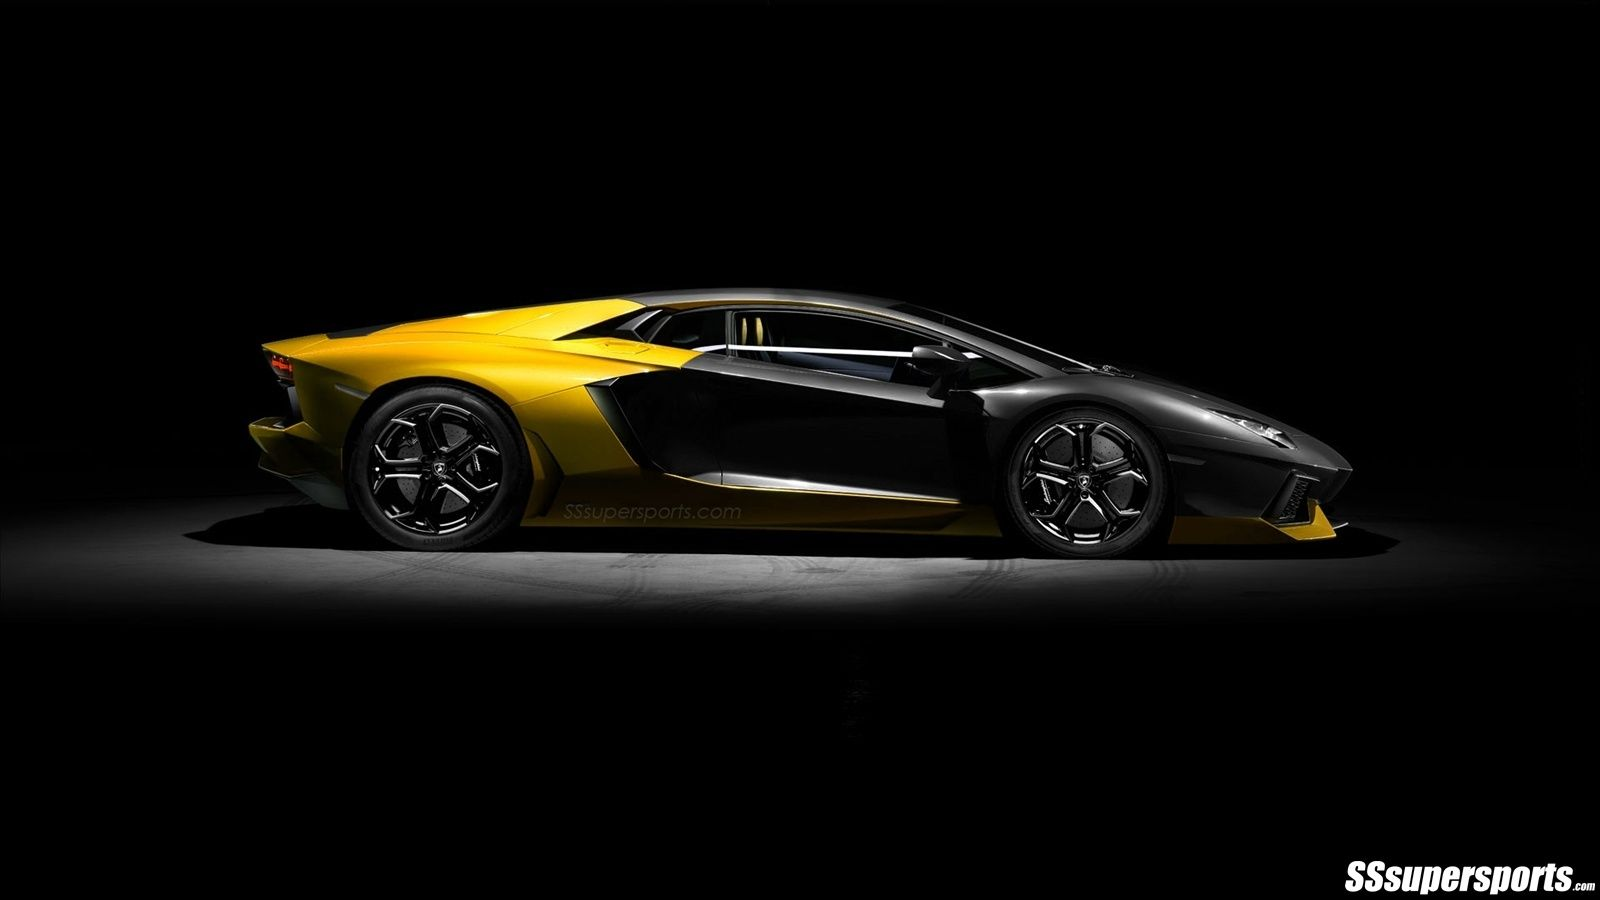 Yellow and Black Aventador pic.1 Sports cars